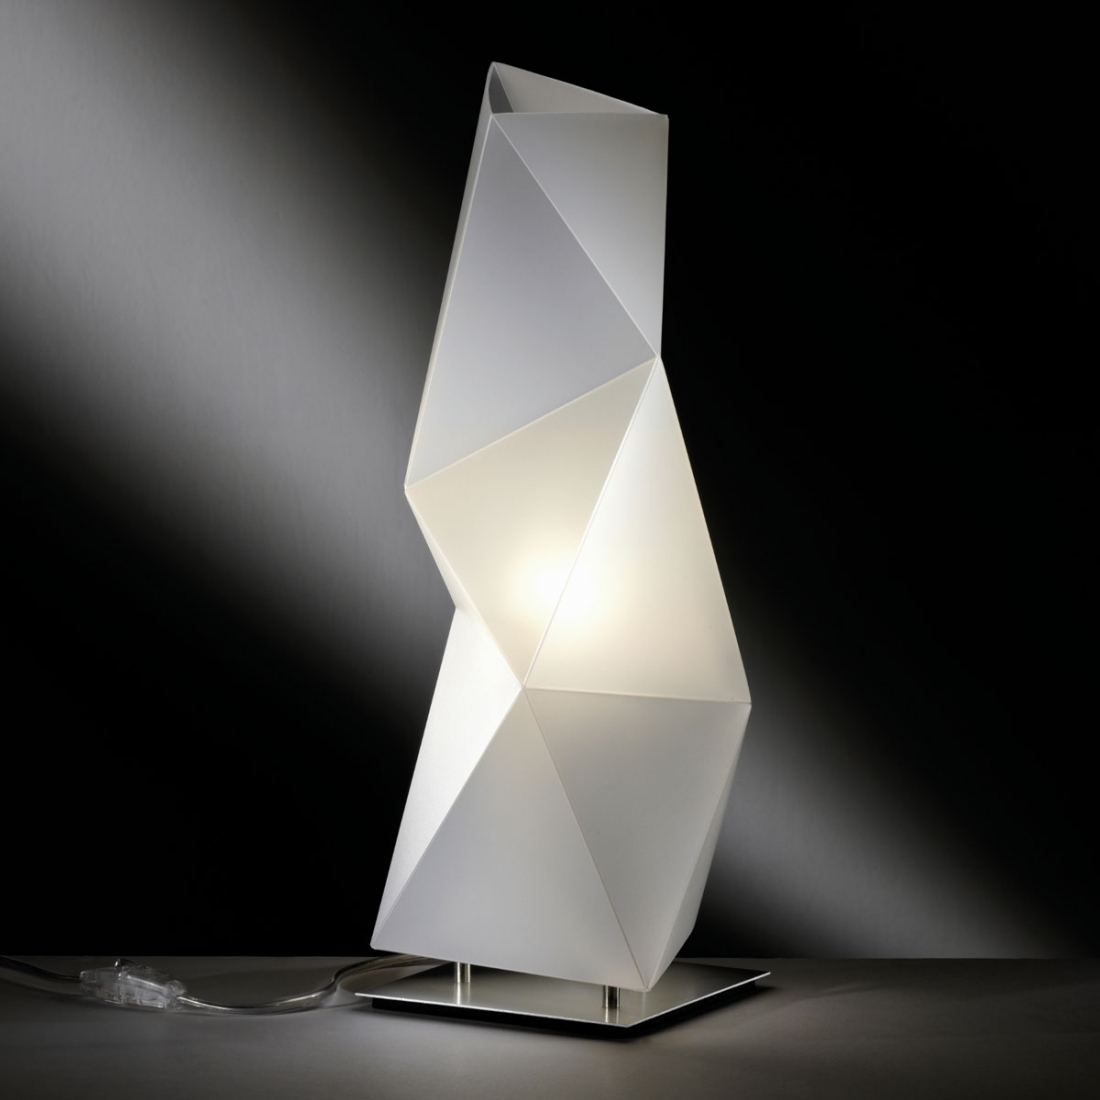 Lampadaire de salon design slamp zendart design - Lampadaire design salon ...